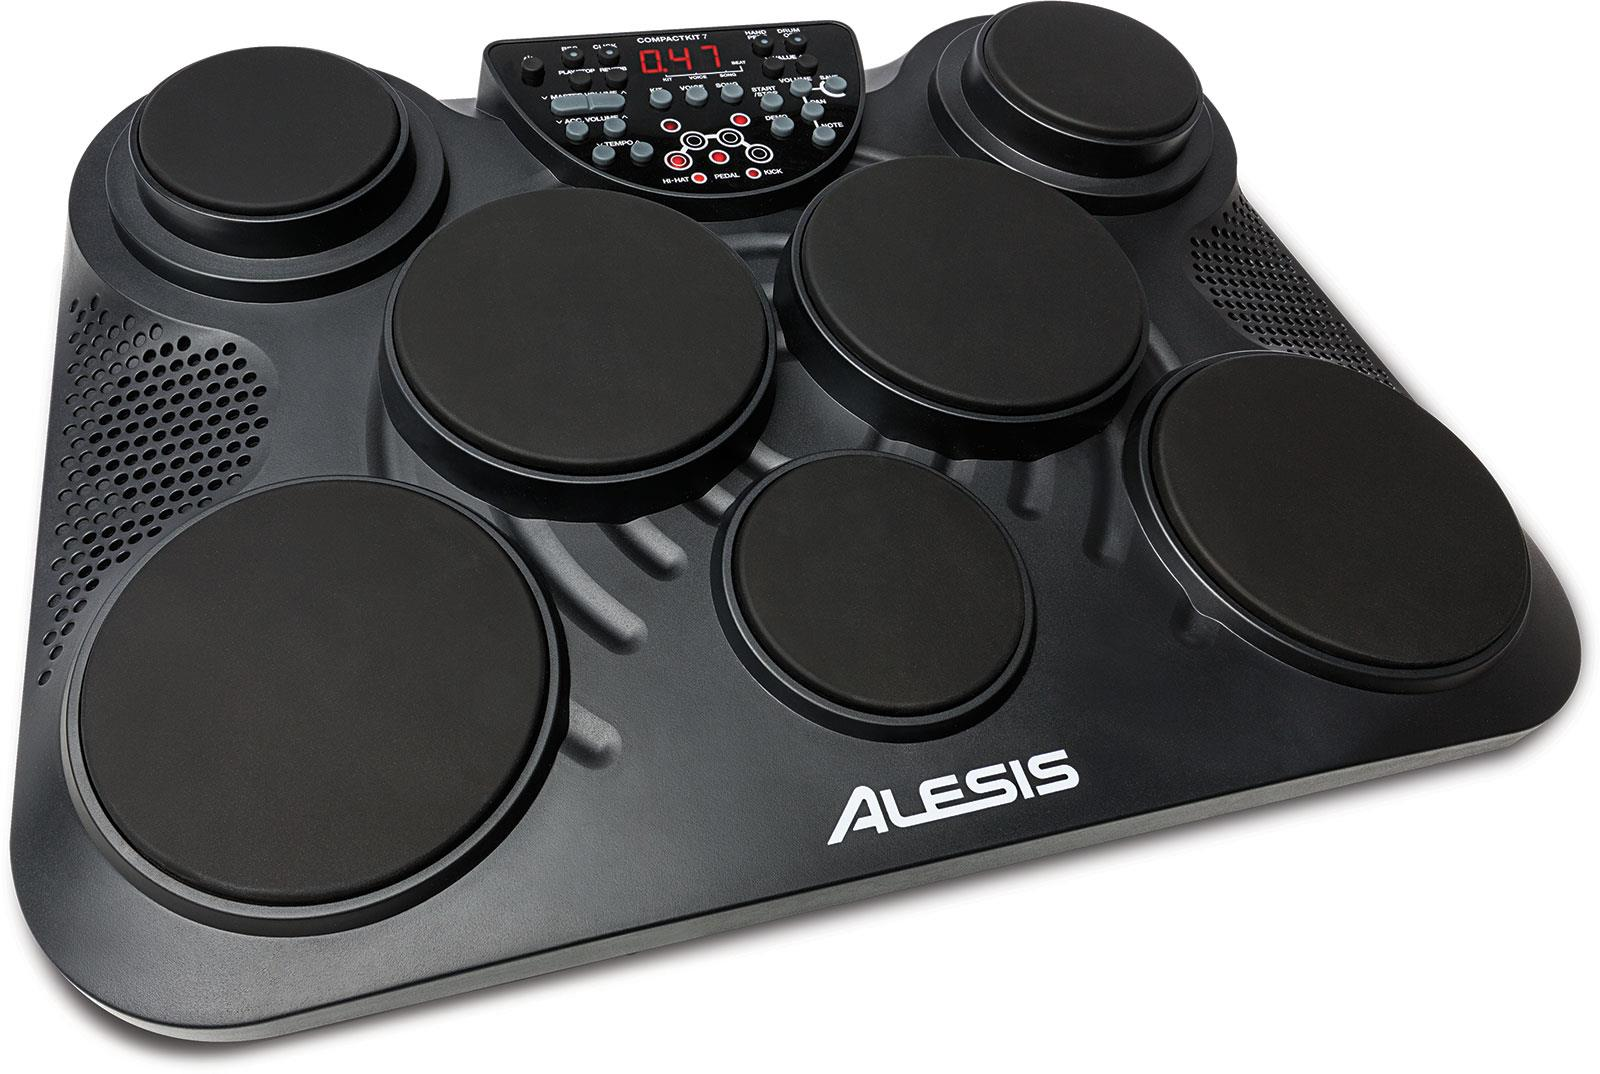 Image of Alesis CompactKit 7 0694318019092